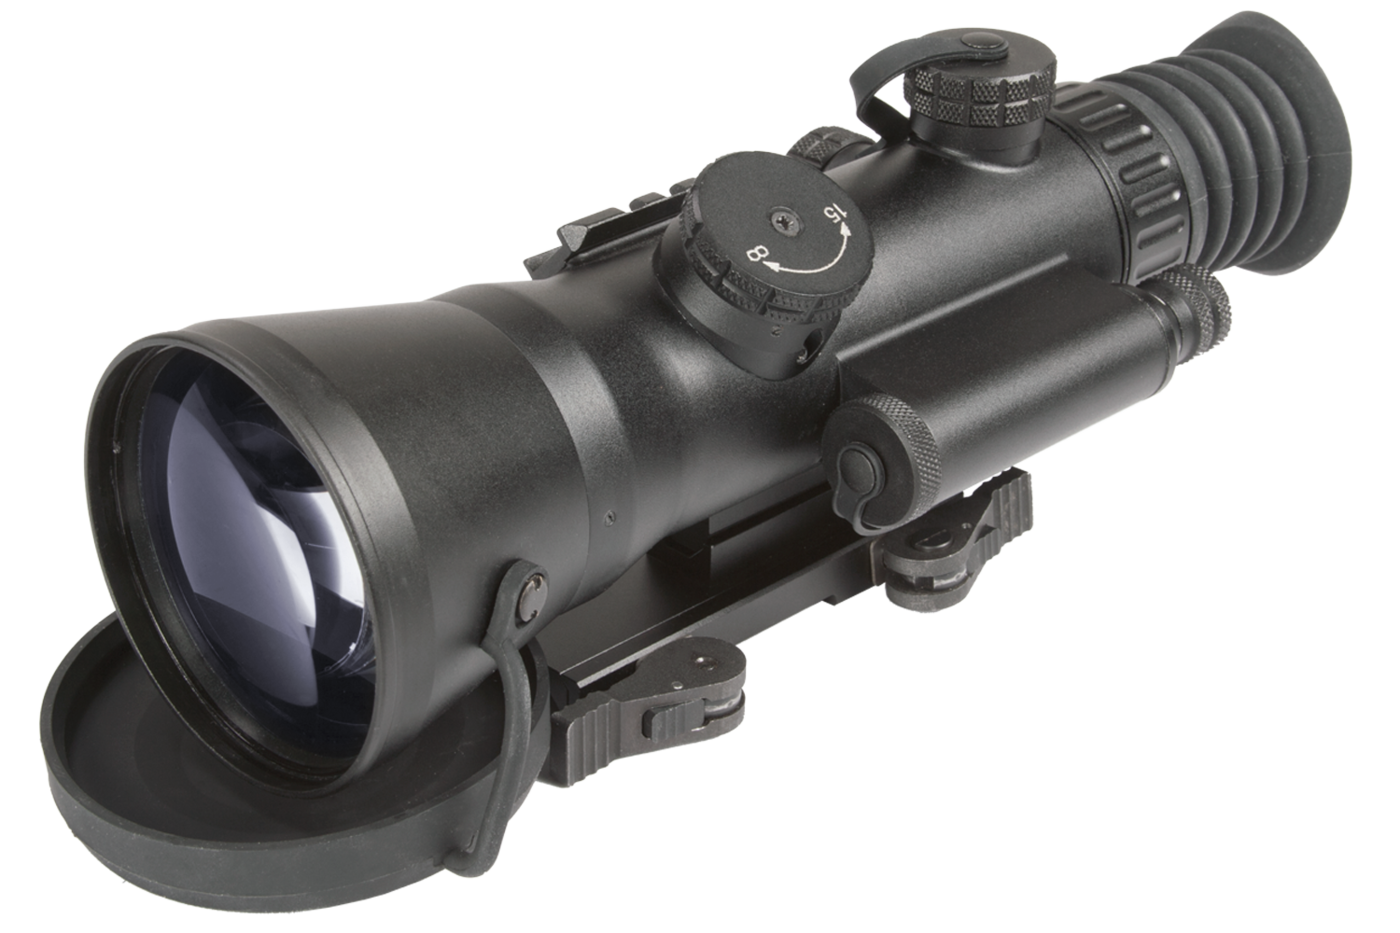 PRG Defense Wolverine 4 NL3 Nightvision Scope 4x Gen 2+ Level 3 with IR